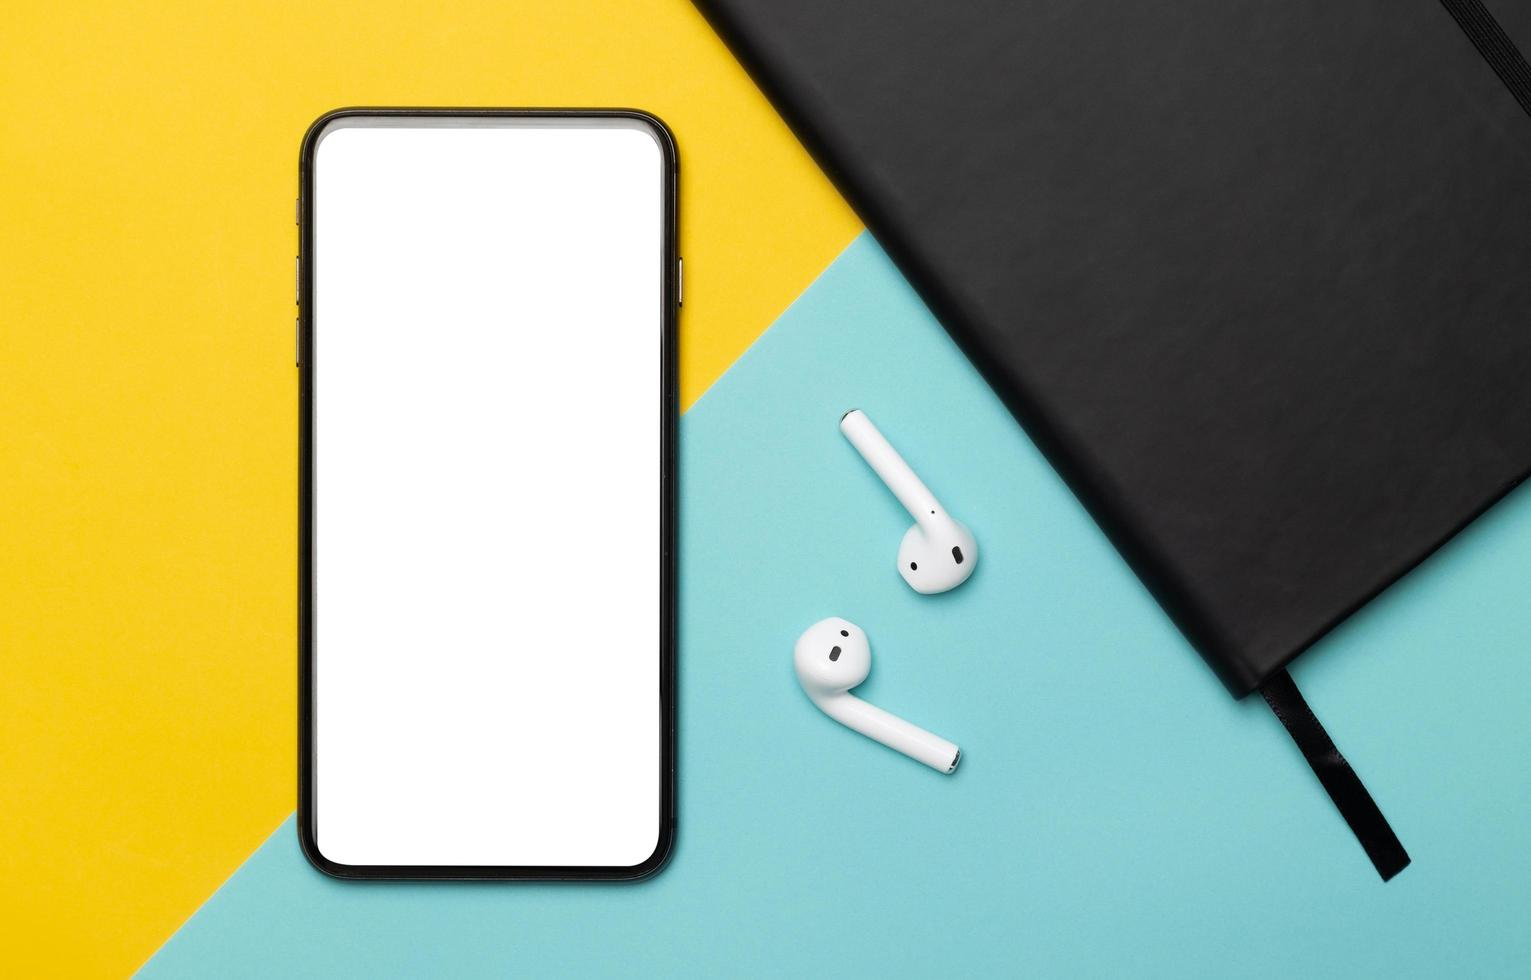 Smartphone and earbuds on yellow and blue background photo